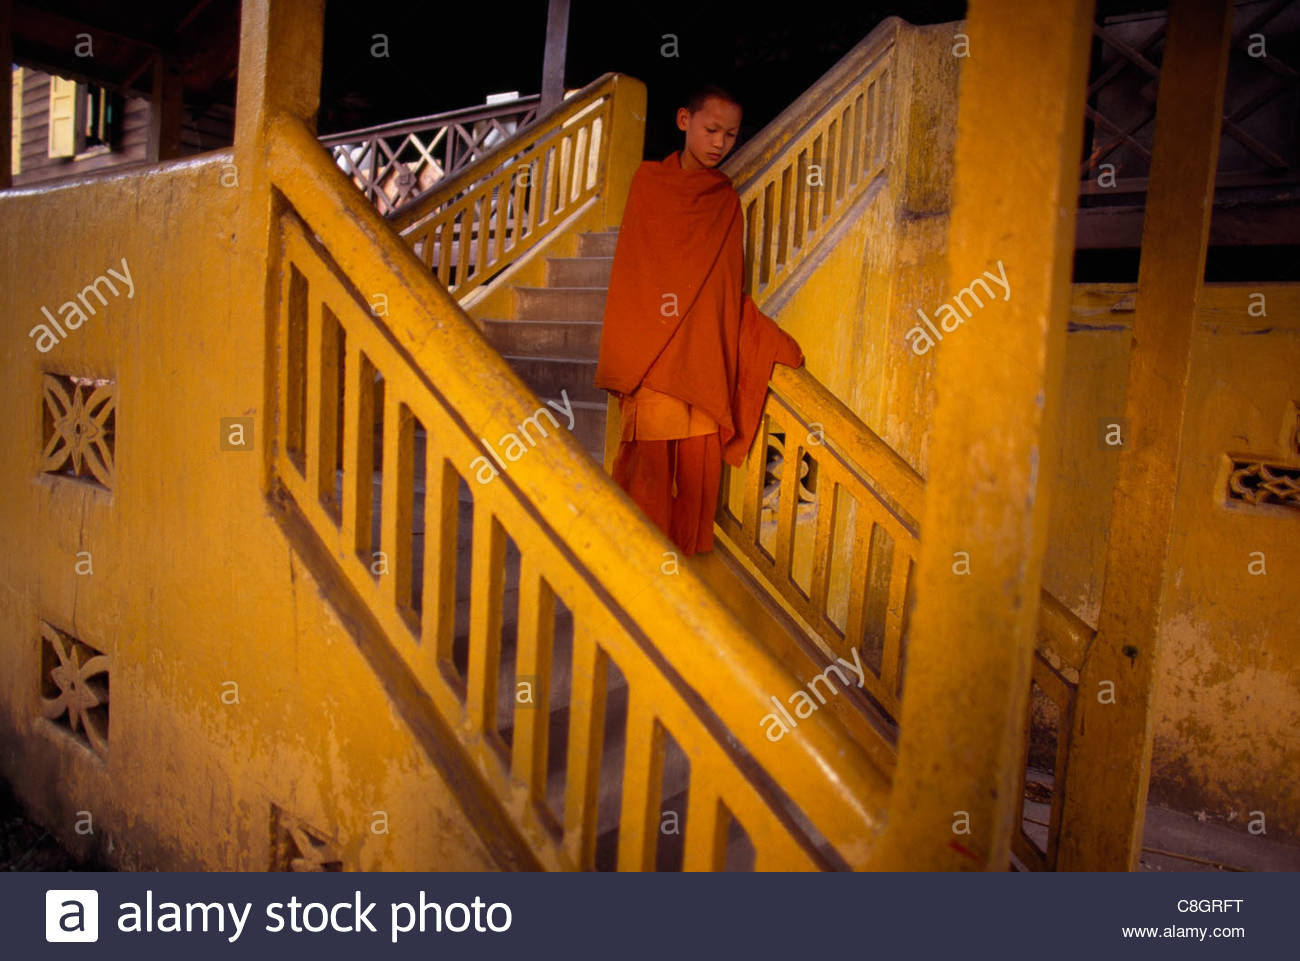 A monk walks down stairs at a temple in the city's center. - Stock Image